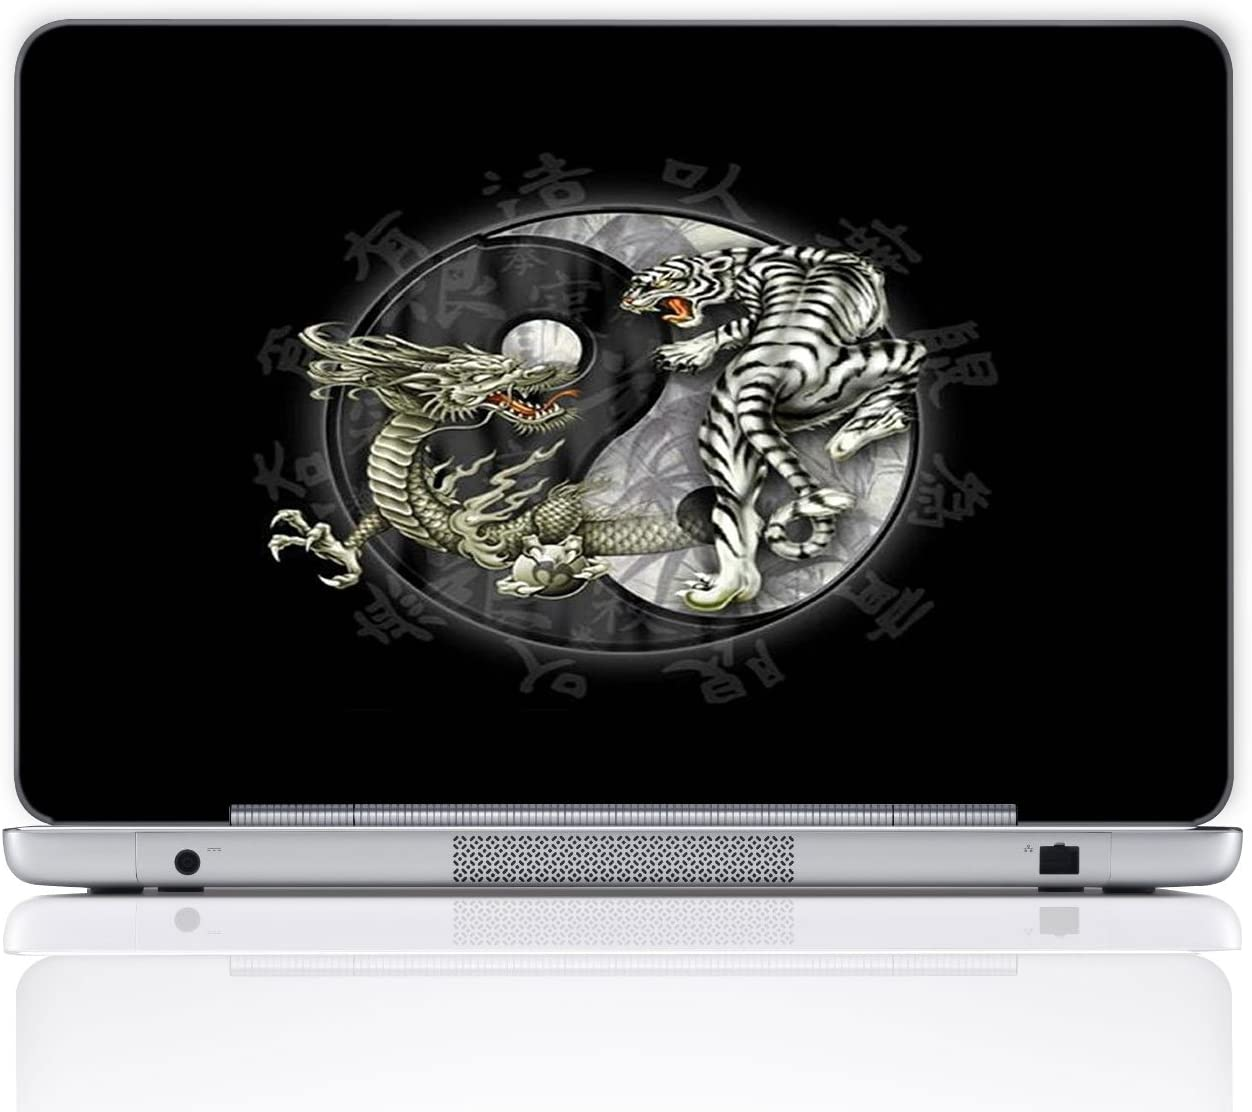 Meffort Inc 15 15.6 Inch Laptop Notebook Skin Sticker Cover Art Decal Free Wrist pad Tiger and Dragon